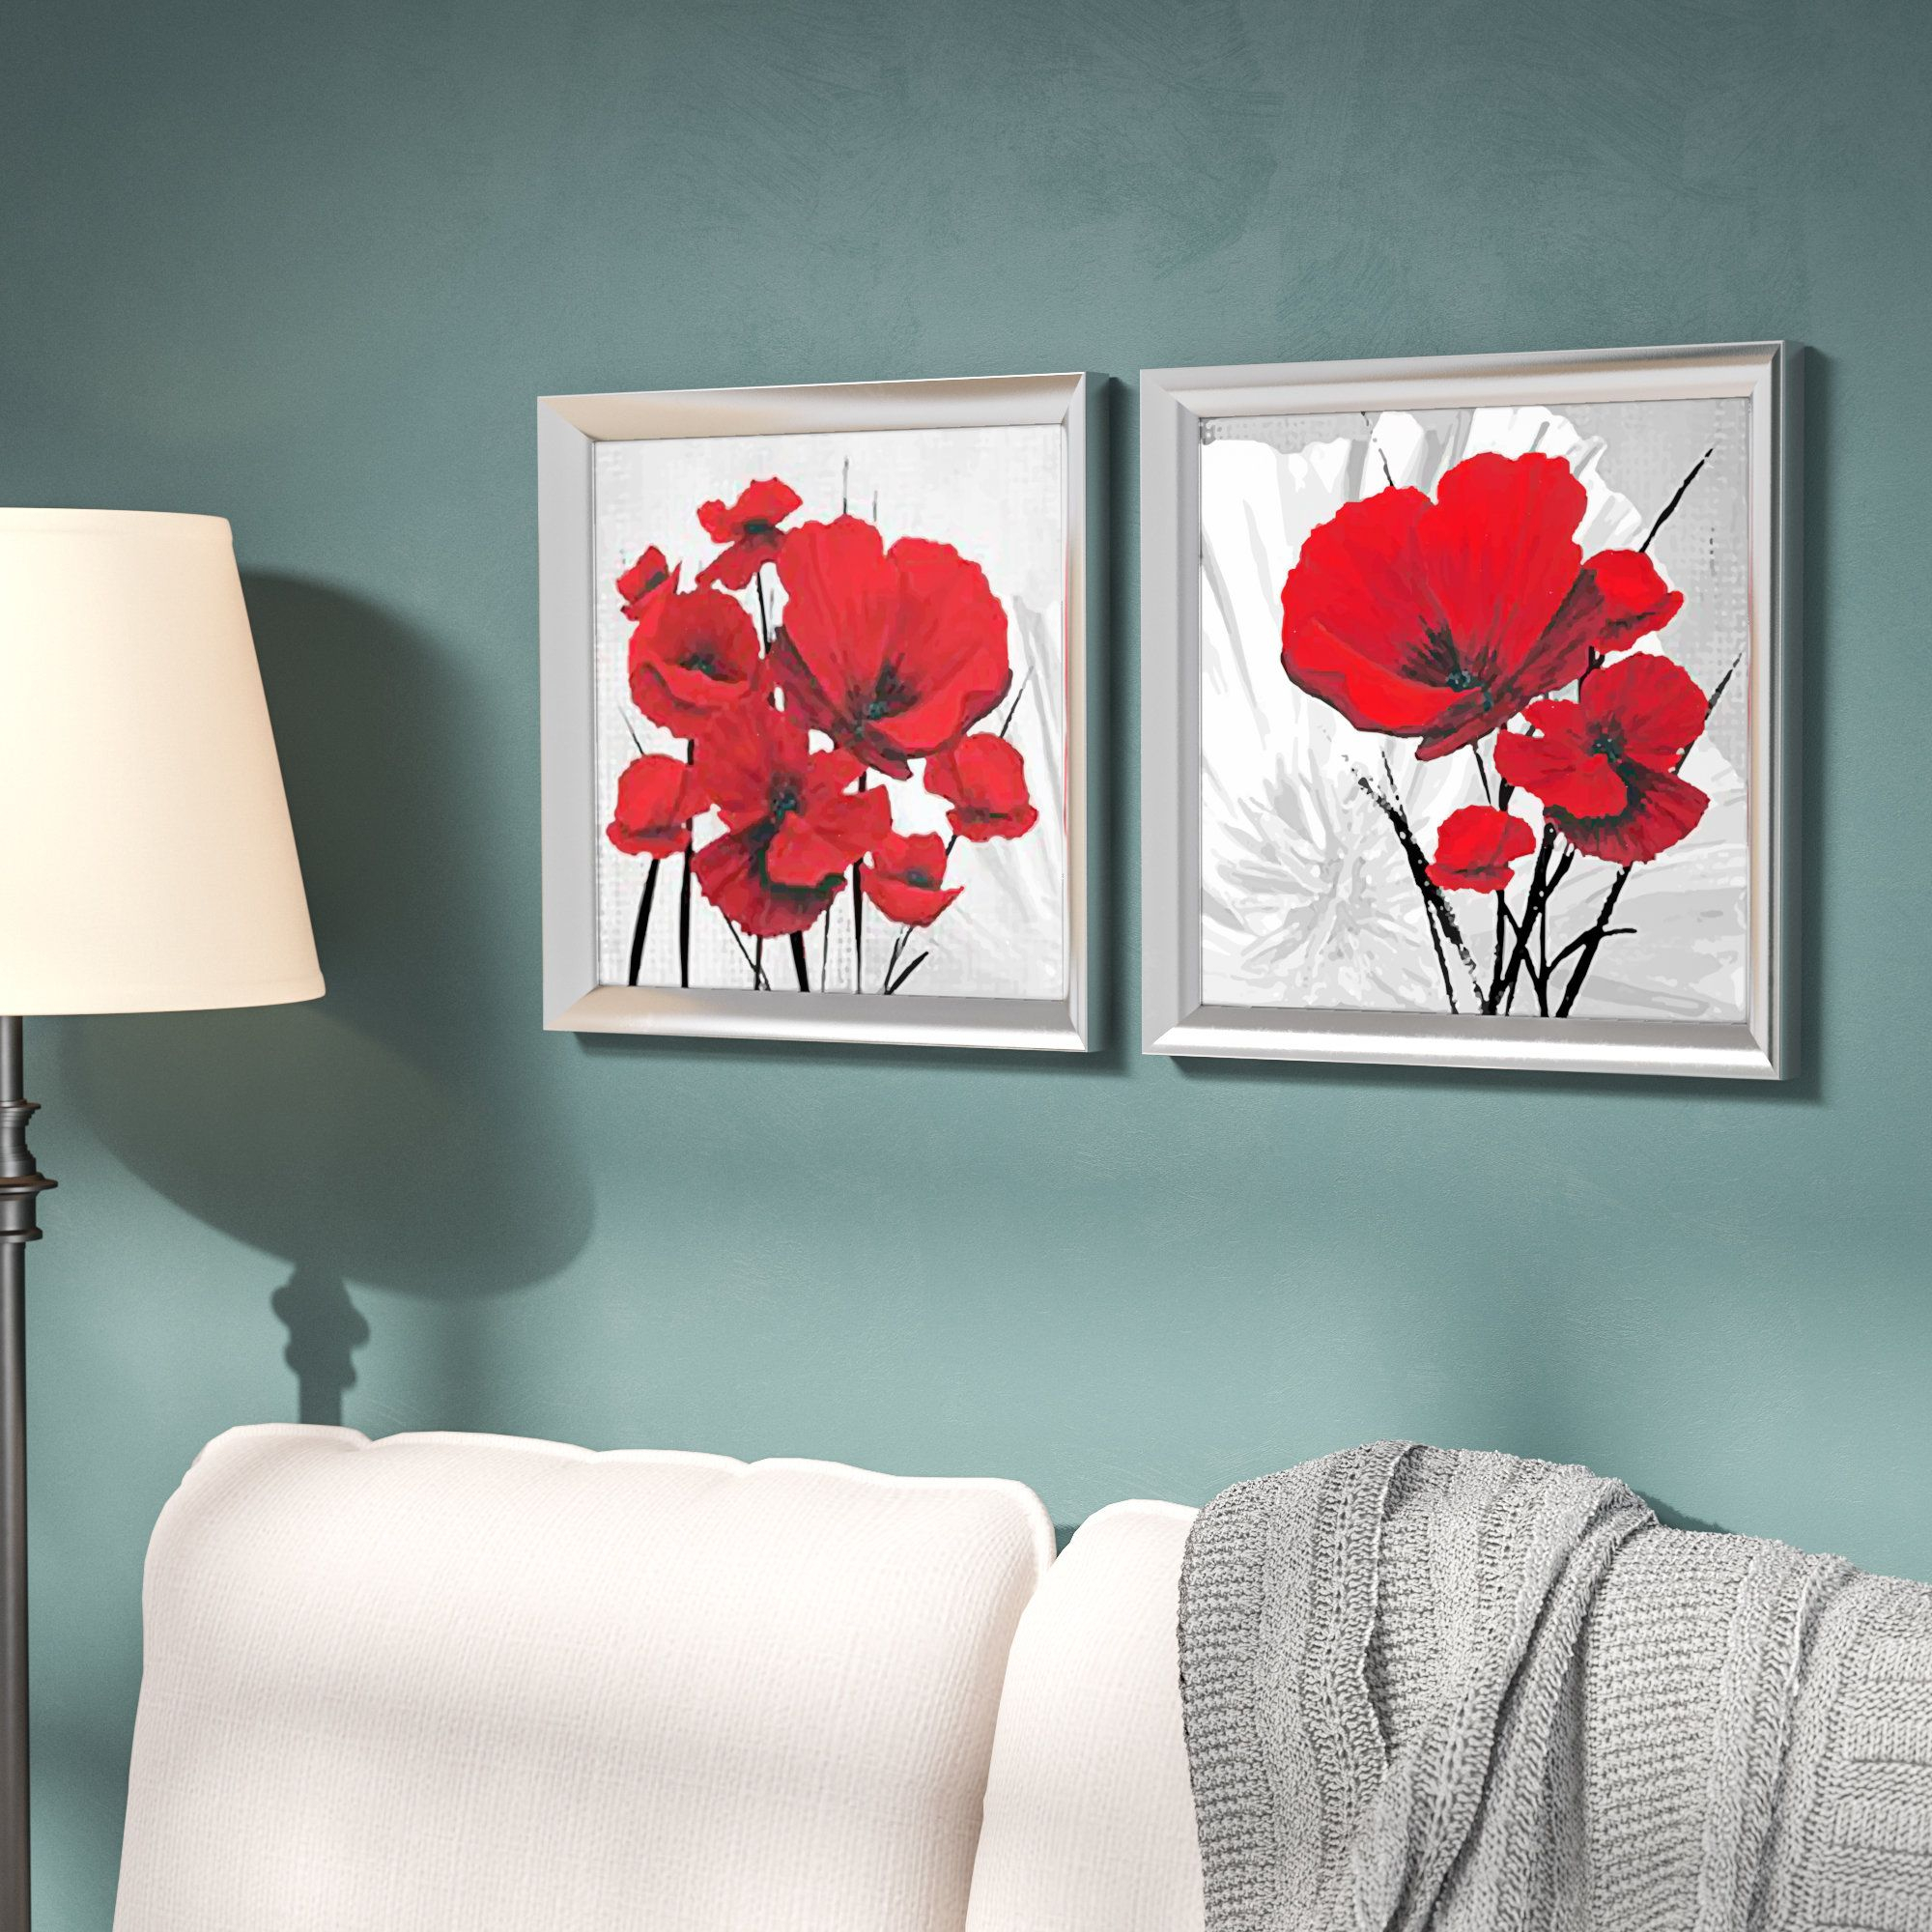 Image Result For Red Poppy Flower Print With Turquoise | Art Pertaining To Most Up To Date Blended Fabric Poppy Red Wall Hangings (View 3 of 20)